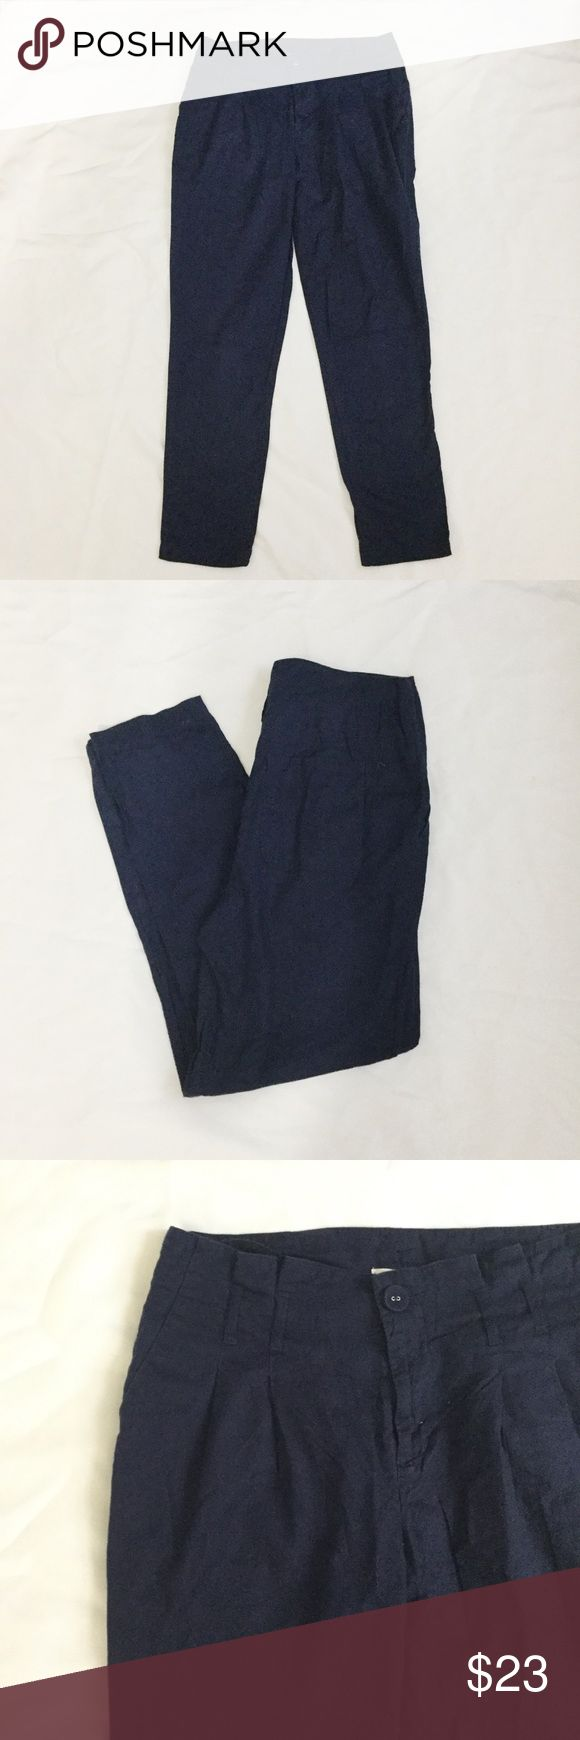 Navy Urban Outfitters Cooperative Paper Bag Pants Navy blue Urban Outfitters Cooperative paper bag pants. Front pleats. Belt loops. Front and back pockets. 100% cotton. Loose through thigh. Tapers at bottom. Look great cuffed! Reasonable offers accepted. Urban Outfitters Pants Ankle & Cropped